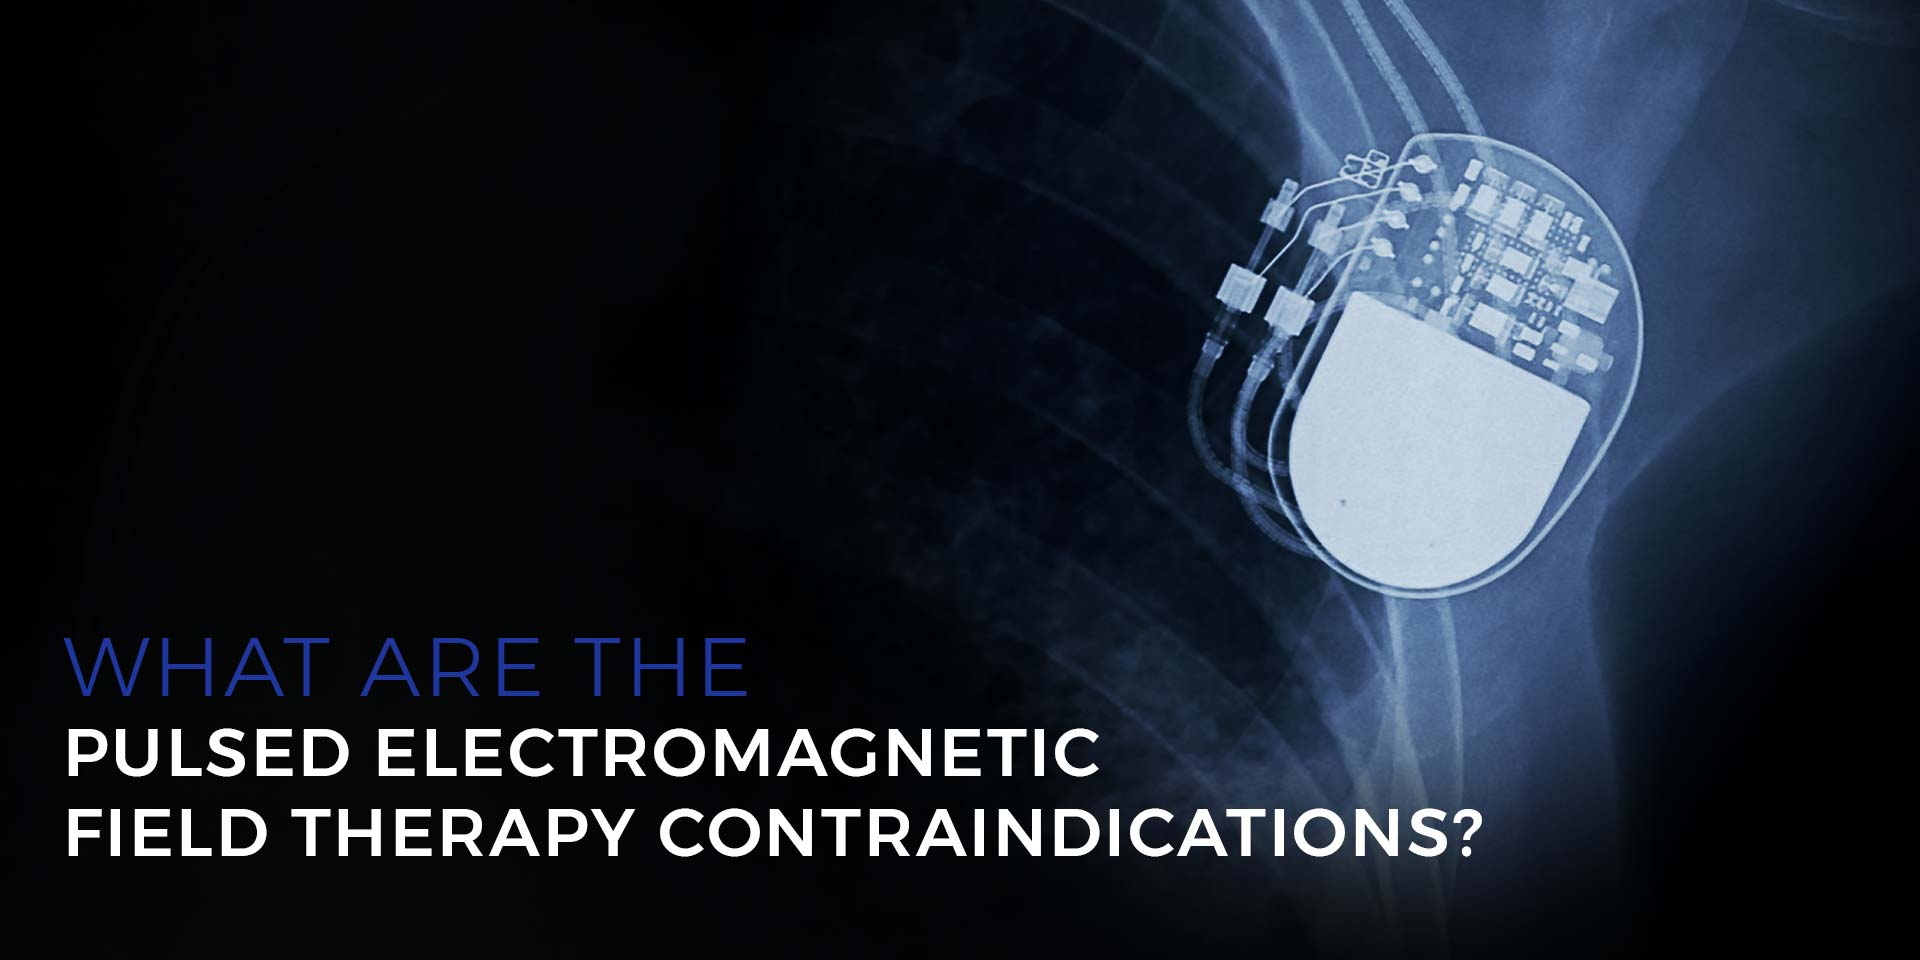 What are the pulsed electromagnetic field therapy contraindications?